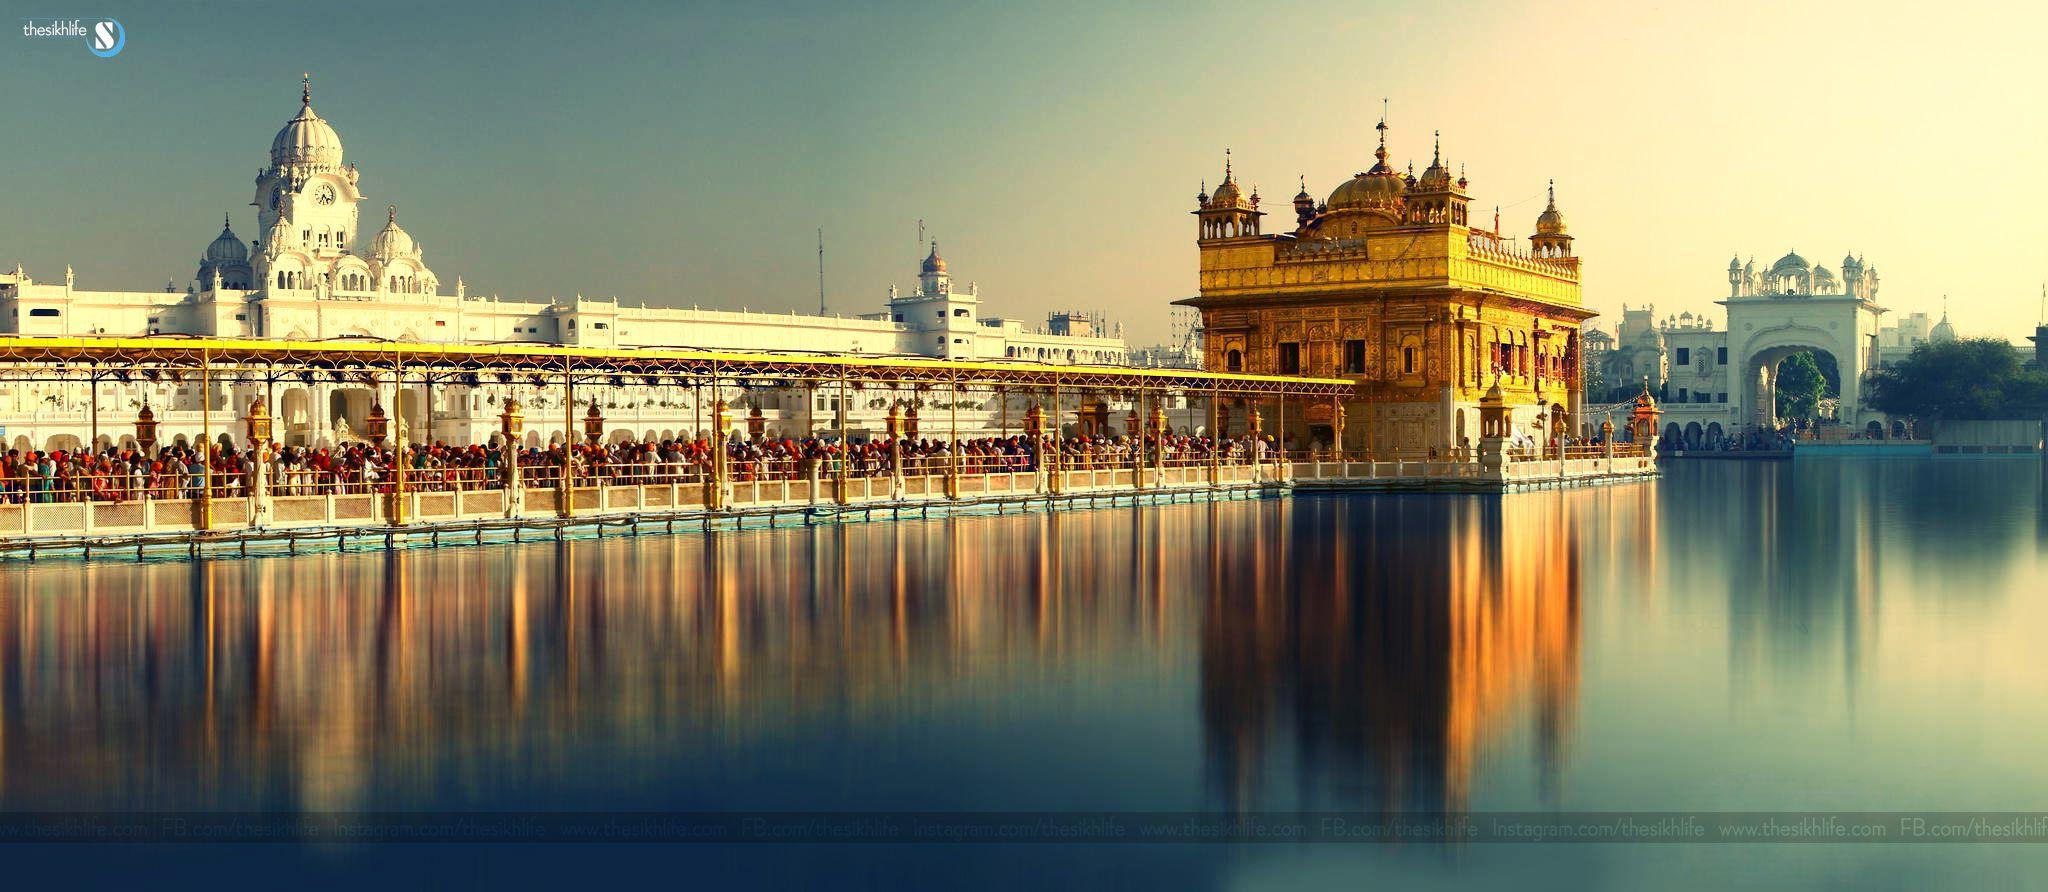 Hd Wallpapers Of Harmandir Sahib Wallpaper Cave